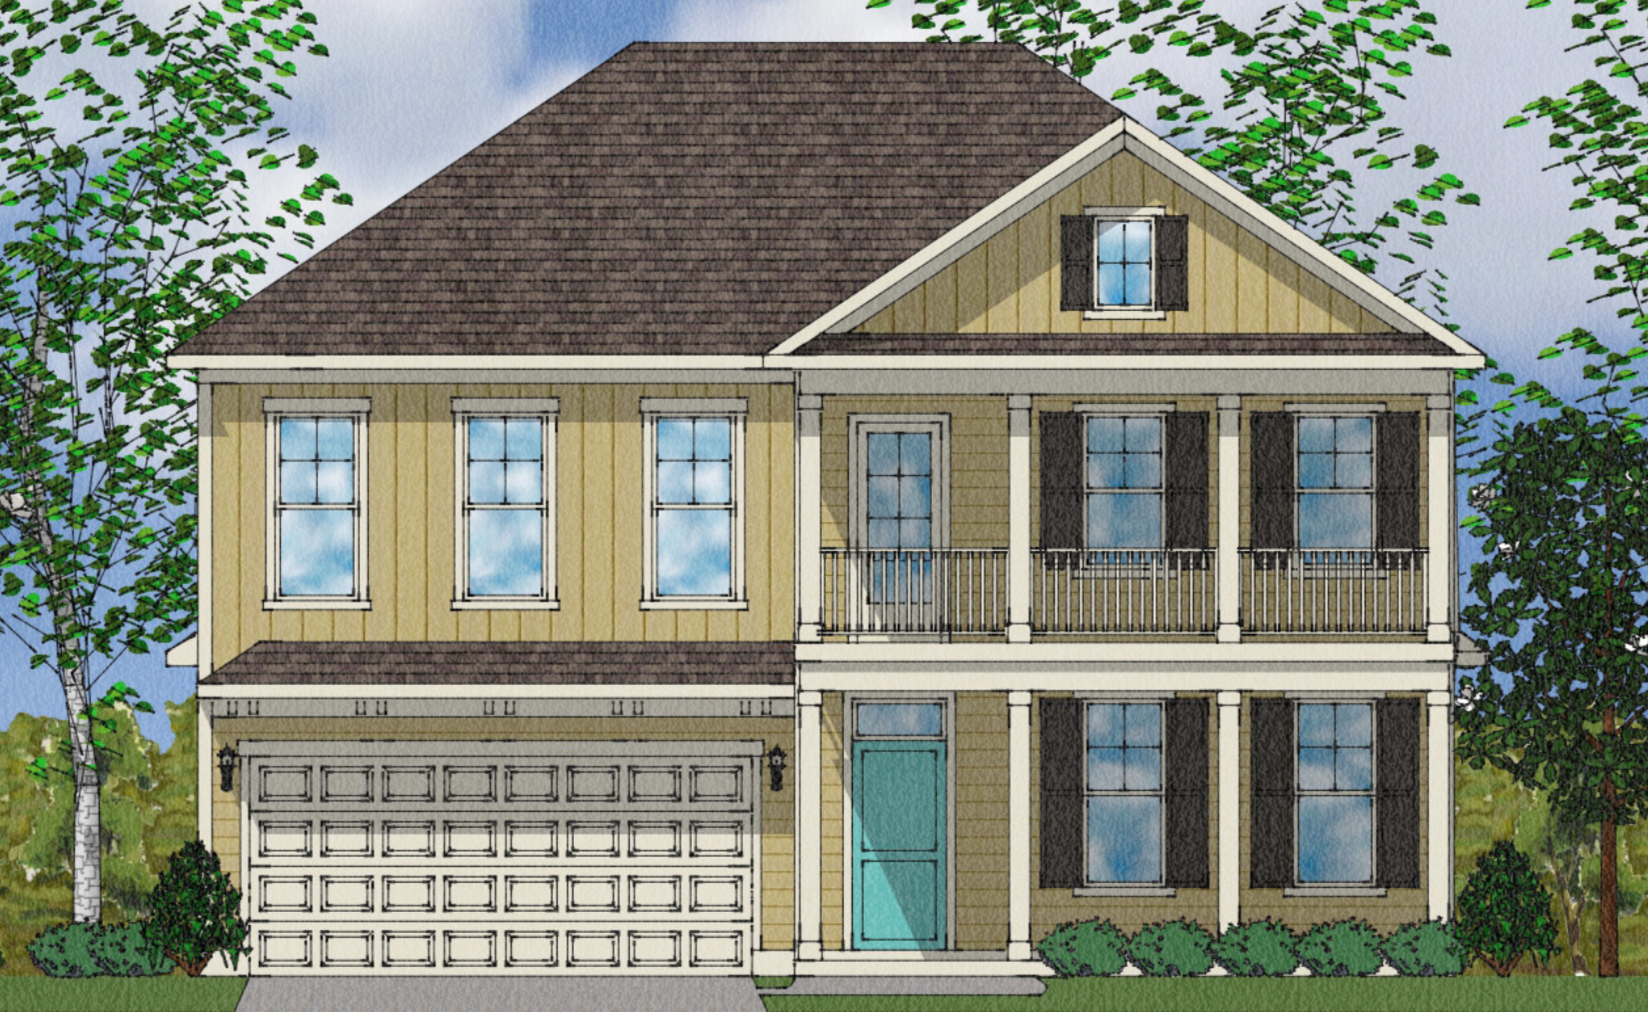 Mungo Homes Patterson Floor Plan: Search For Floor Plans & Designs On New Homes In Columbia, SC